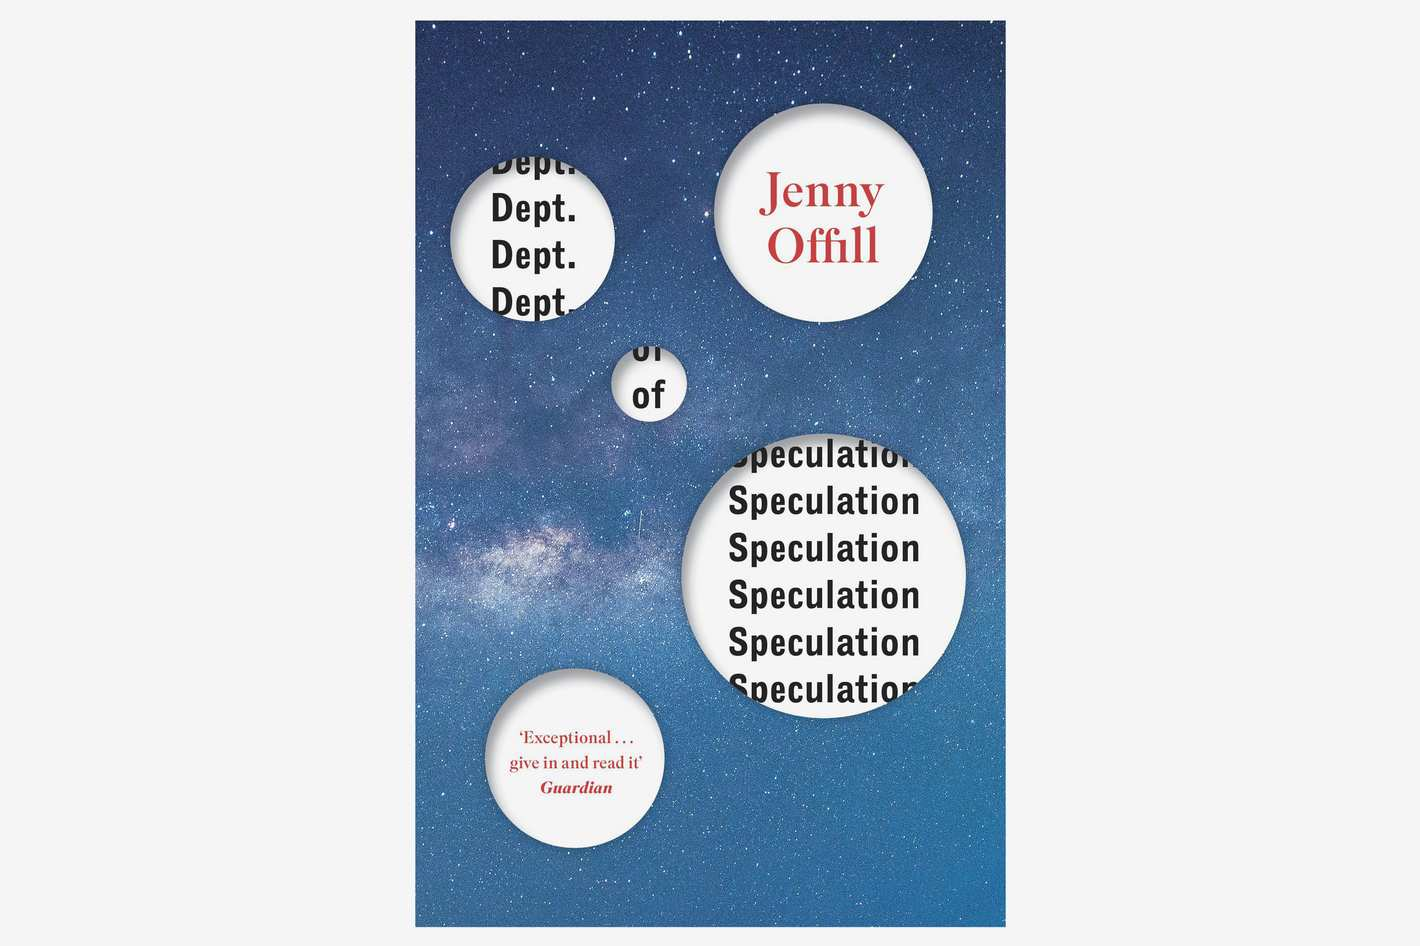 'Dept. of Speculation' by Jenny Offill